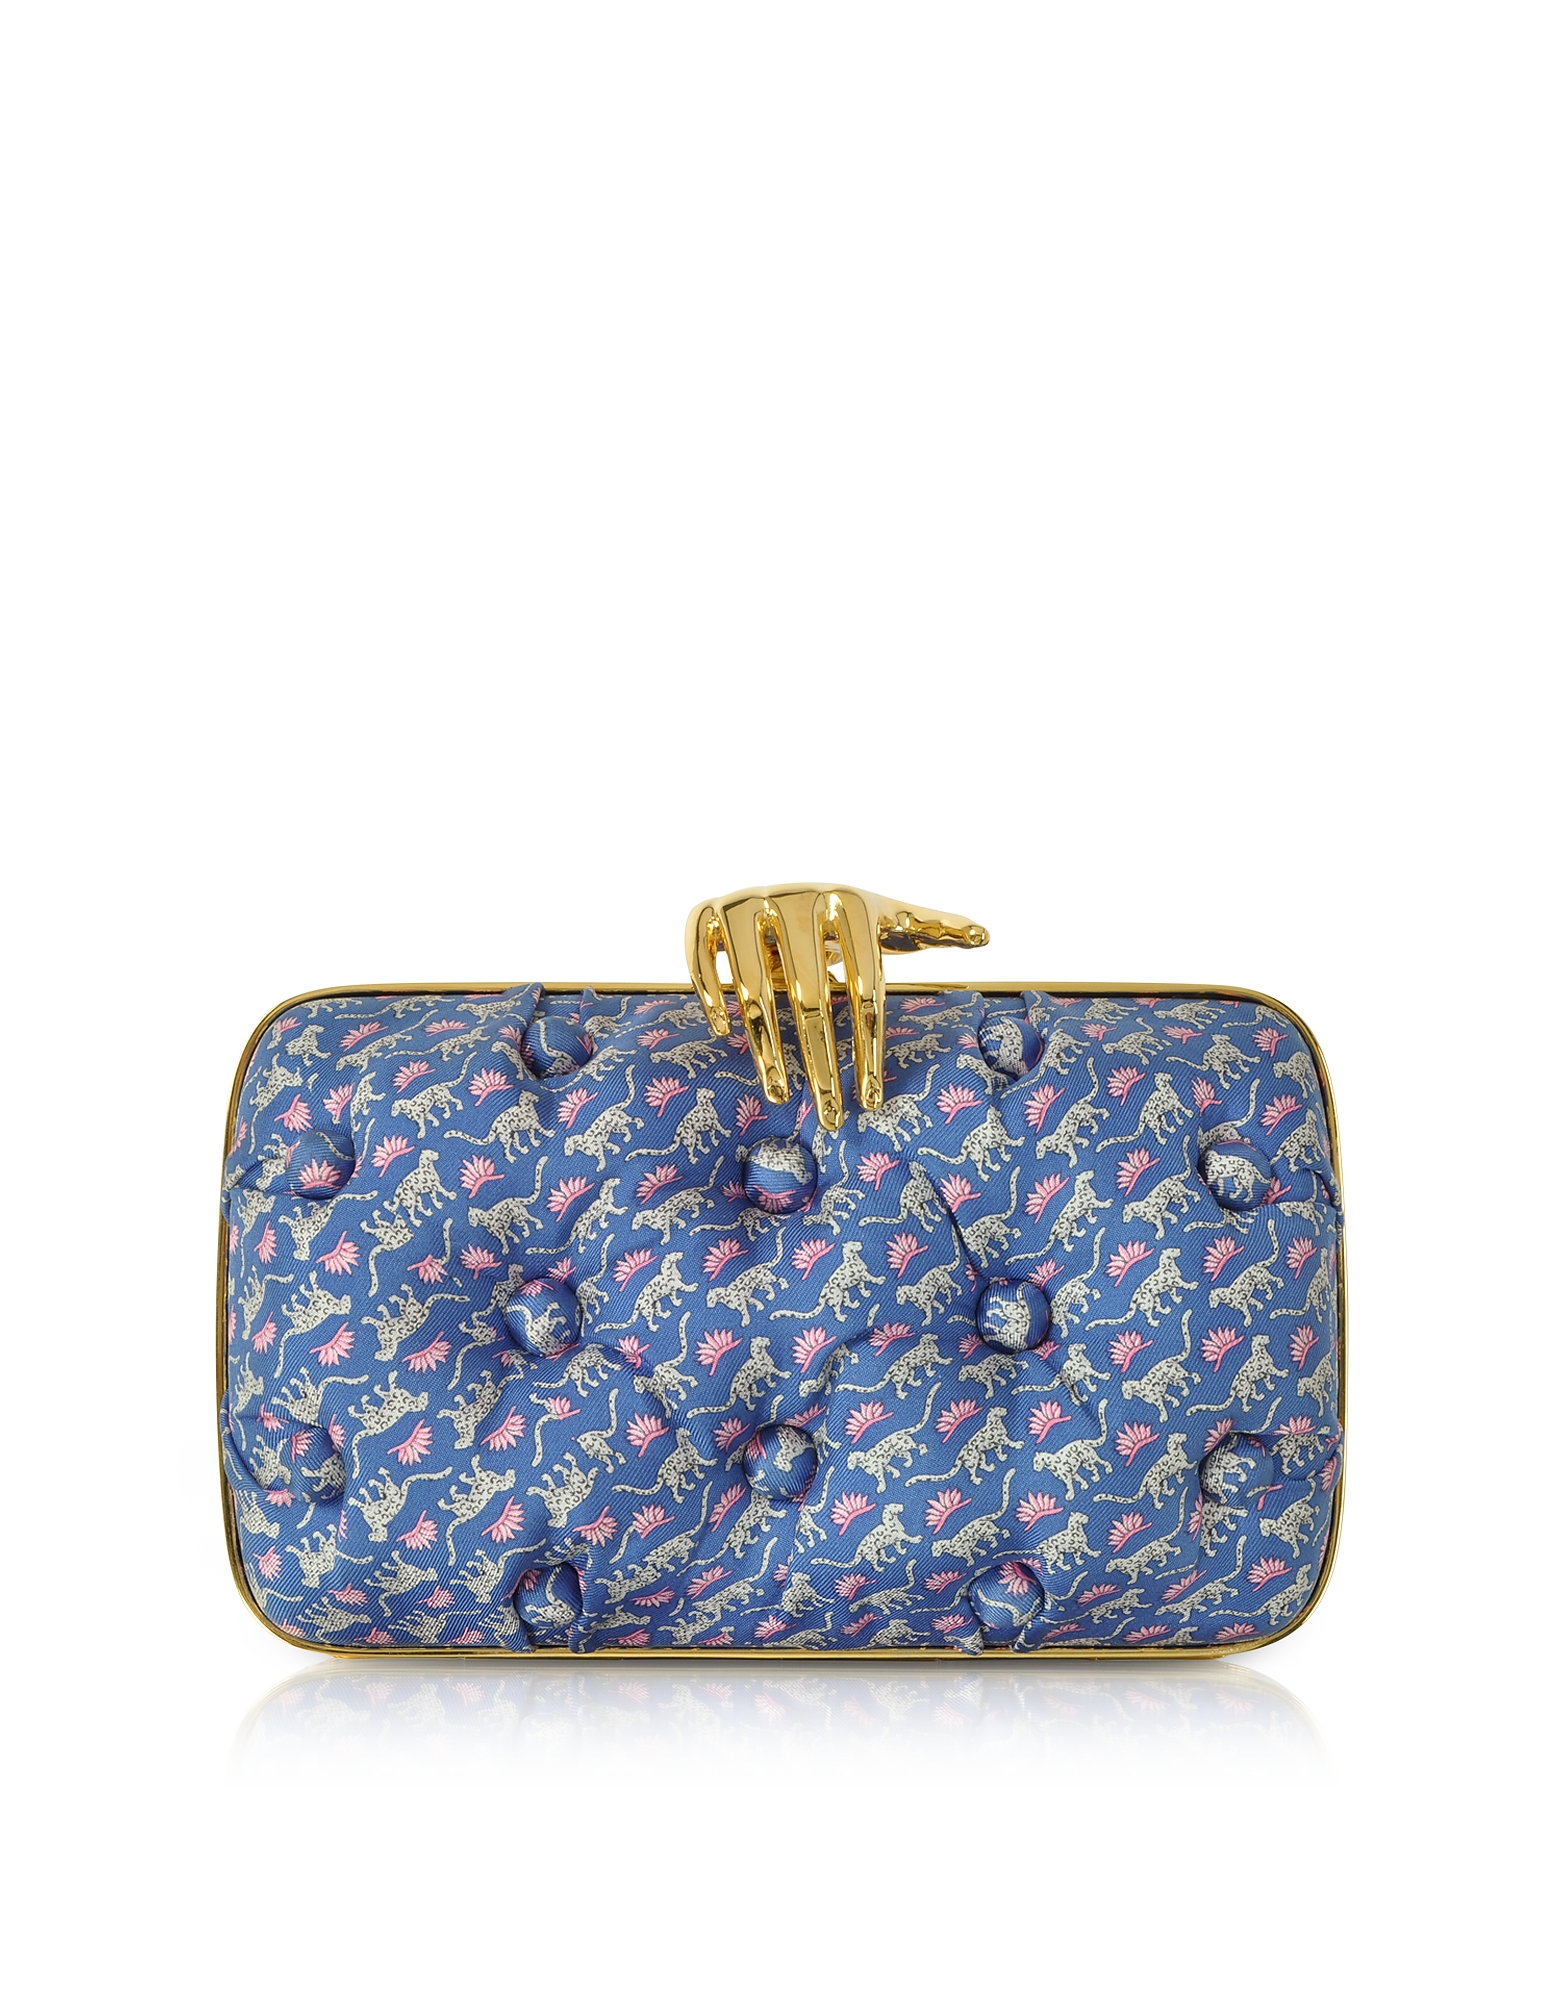 Benedetta Bruzziches Handbags, Leopards Printed Blue Satin Silk Carmen Clutch w/ Golden Hand